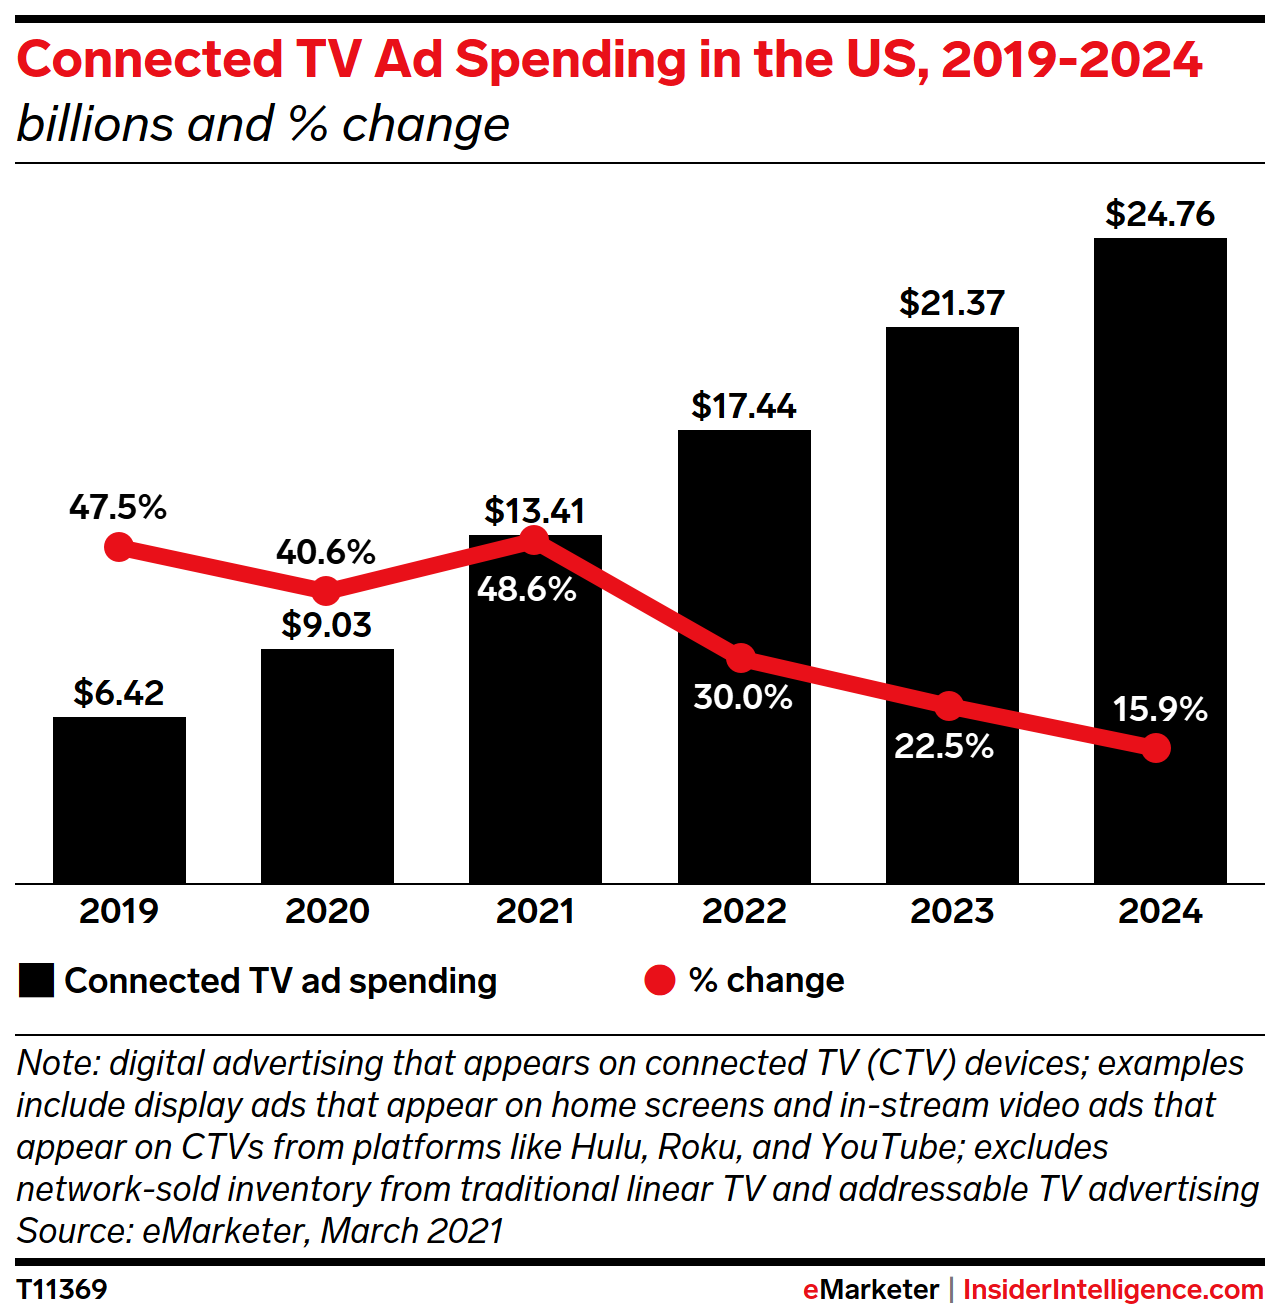 Connected TV Ad Spending in the US, 2019-2024 (billions and % change)